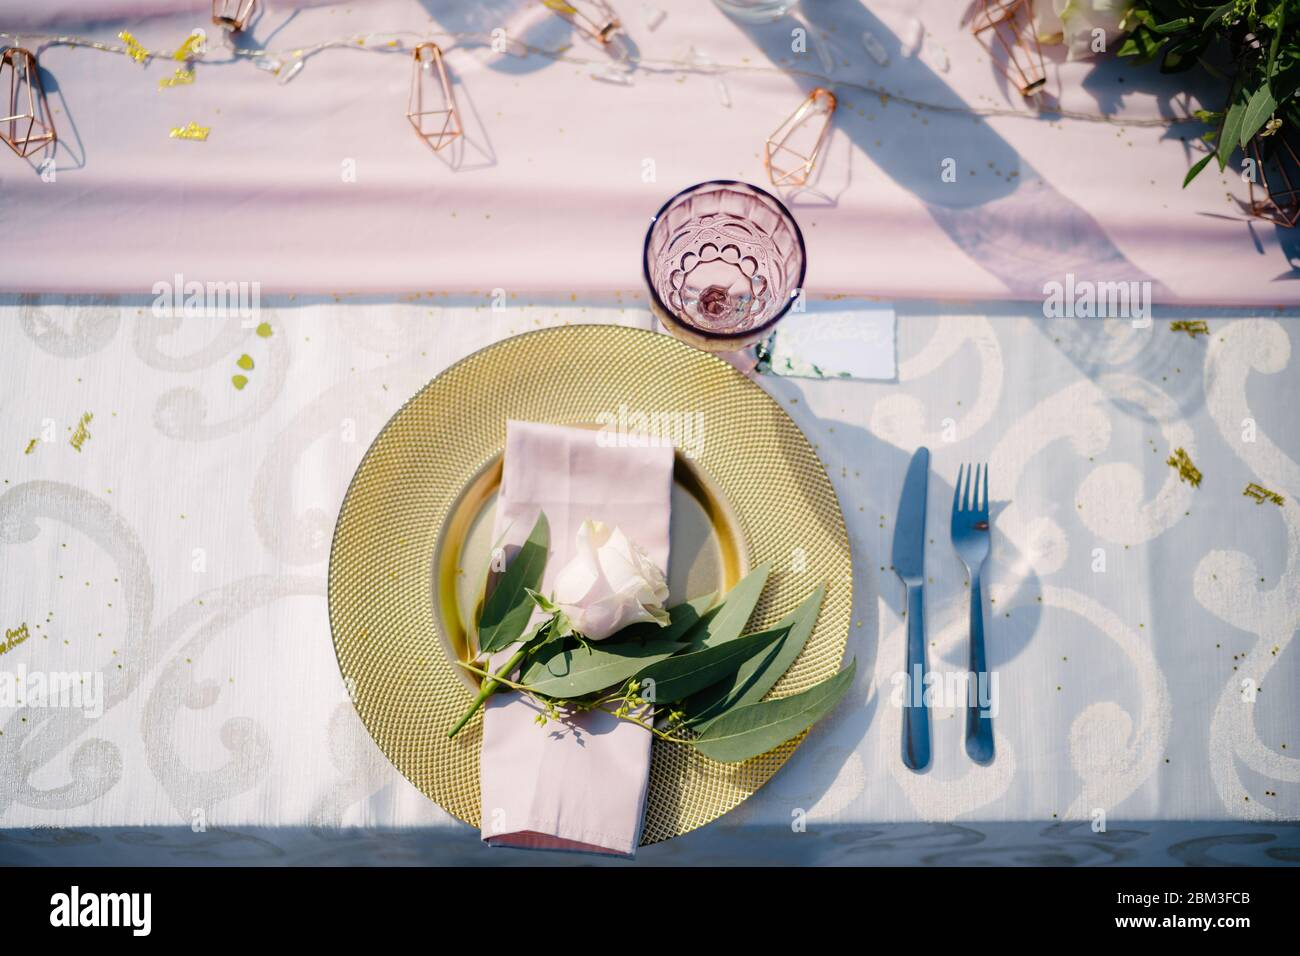 Wedding Dinner Table Reception Gold Plate With Pink Cloth Napkin And Olive Leaves Raspberry Old Glass Glass A Floral Arrangement In The Center Of Stock Photo Alamy